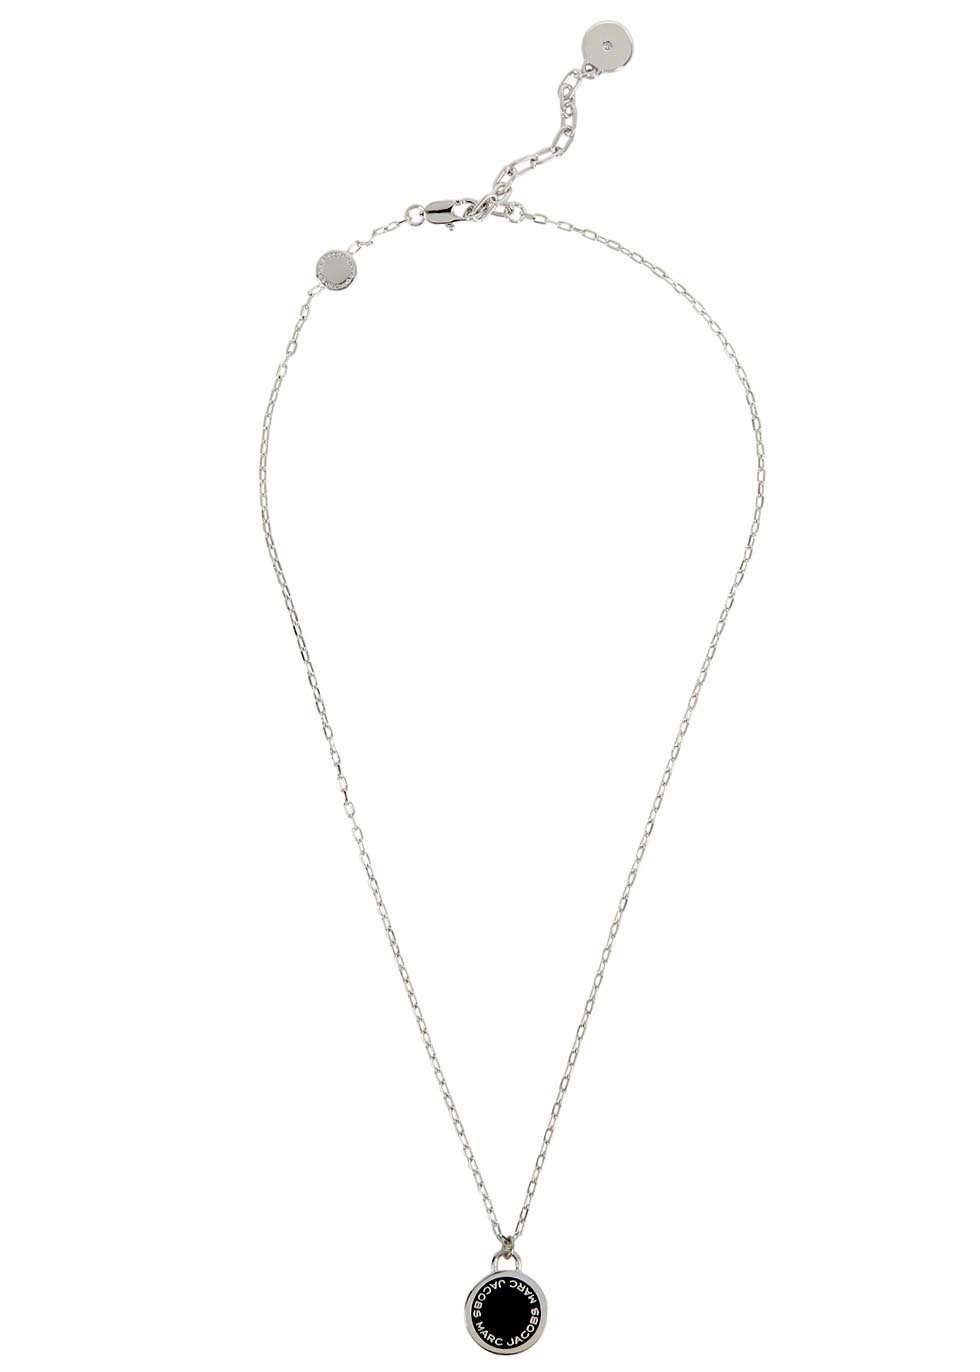 Logo Disc Silver Tone Necklace - predominant colour: silver; secondary colour: black; occasions: work; style: pendant; length: mid; size: standard; material: chain/metal; finish: plain; embellishment: beading; season: s/s 2016; wardrobe: basic